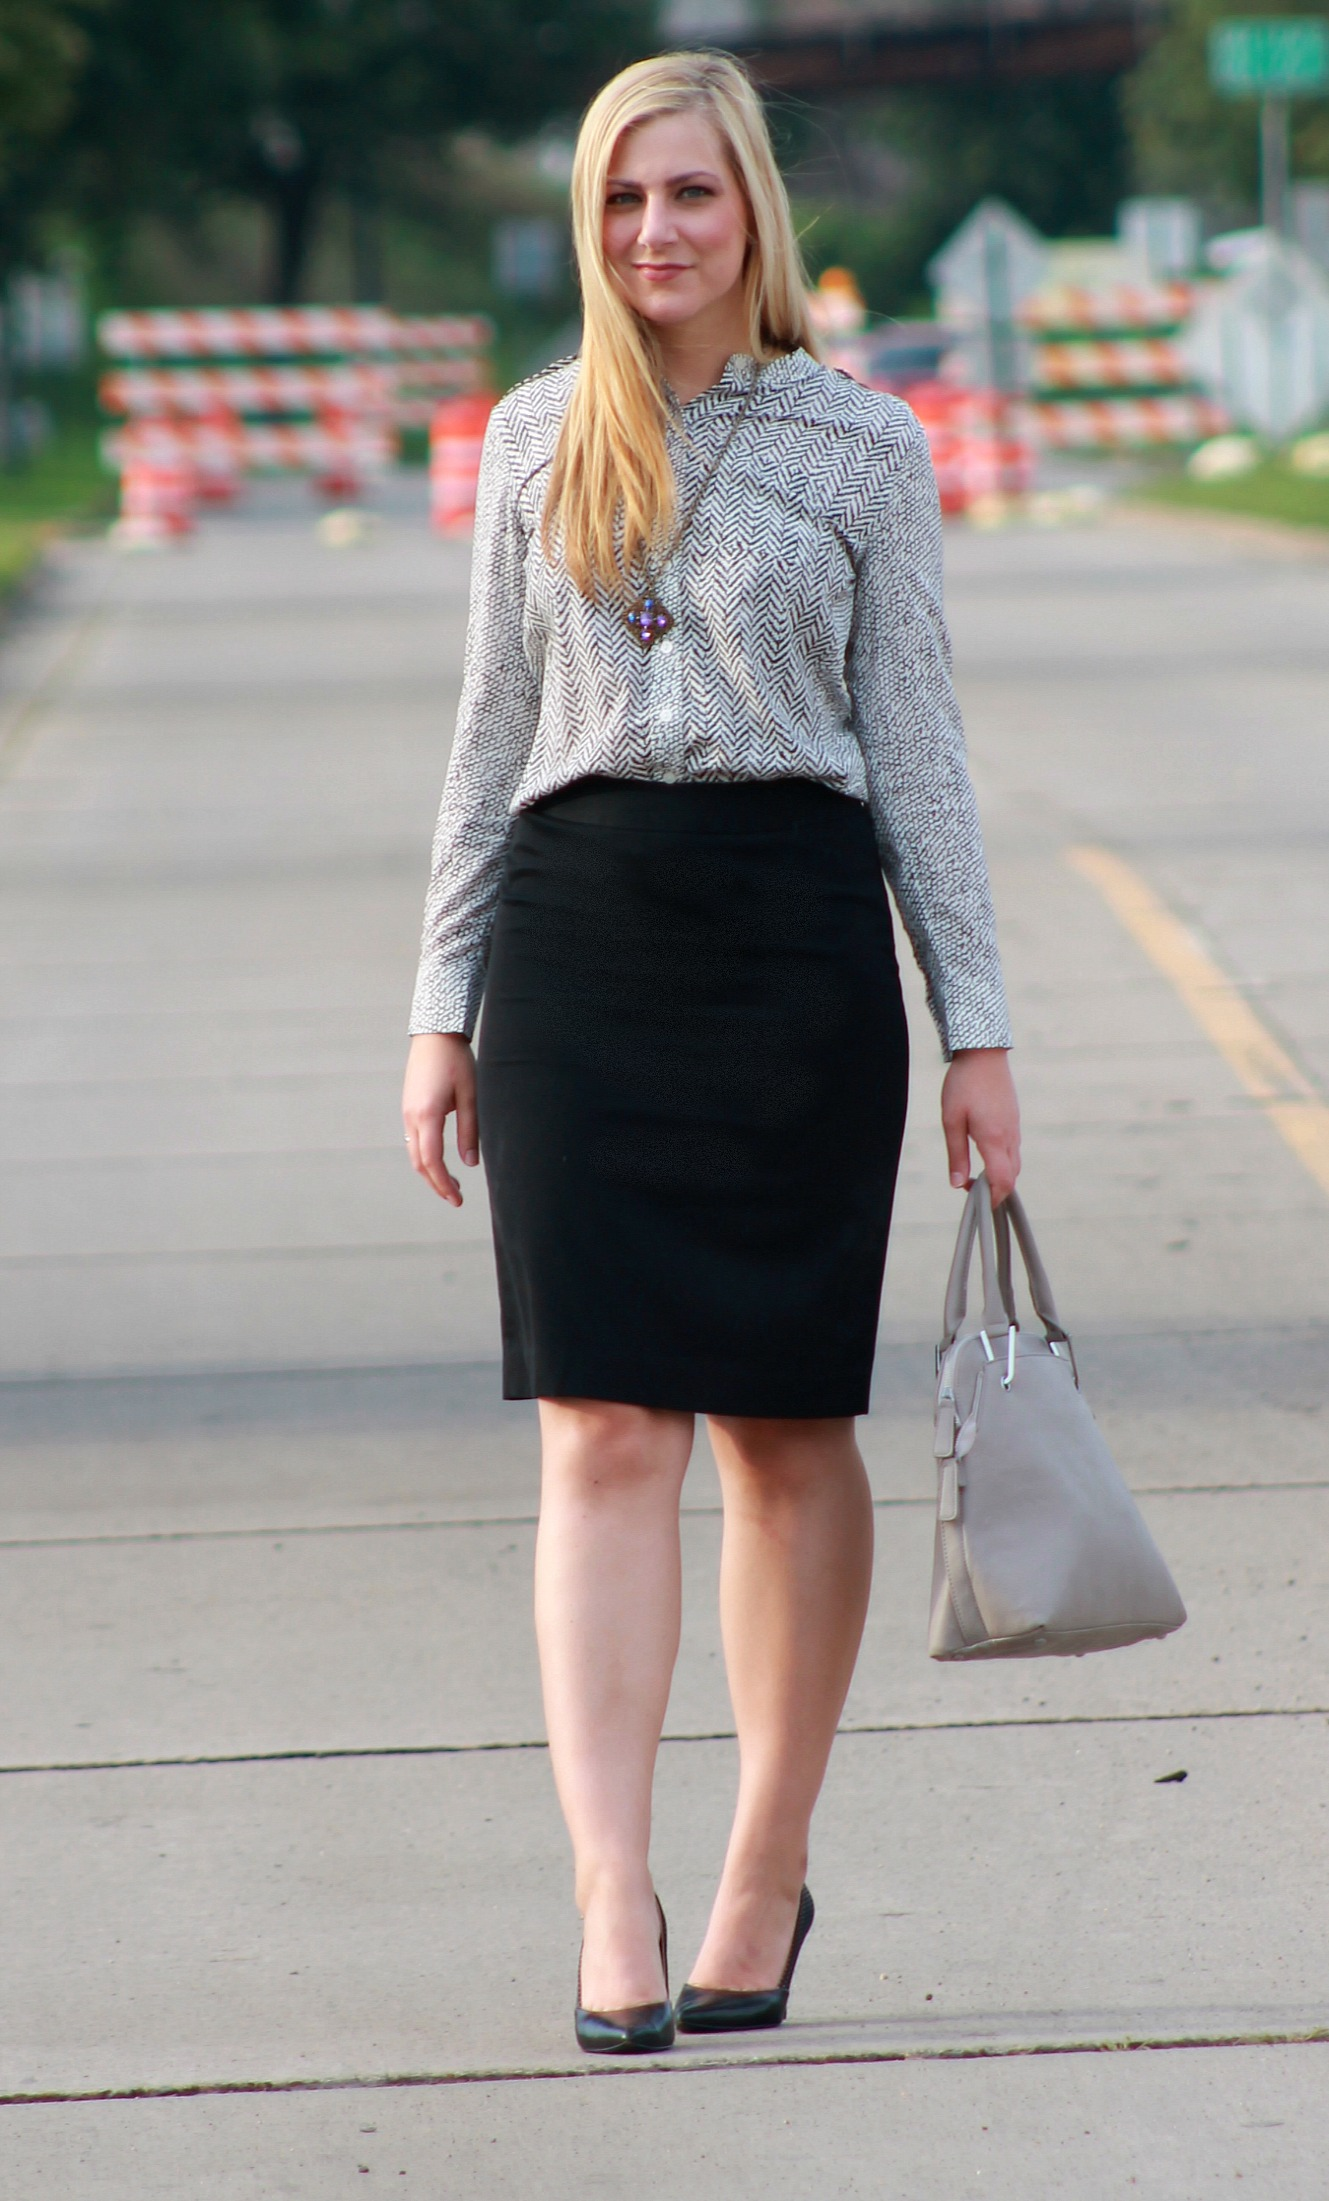 thrifted neutral work style rachel s lookbook to pizza luce for dinner which is nearby one of my favorite goodwill locations we went thrifting after dinner and i found this neutral military style